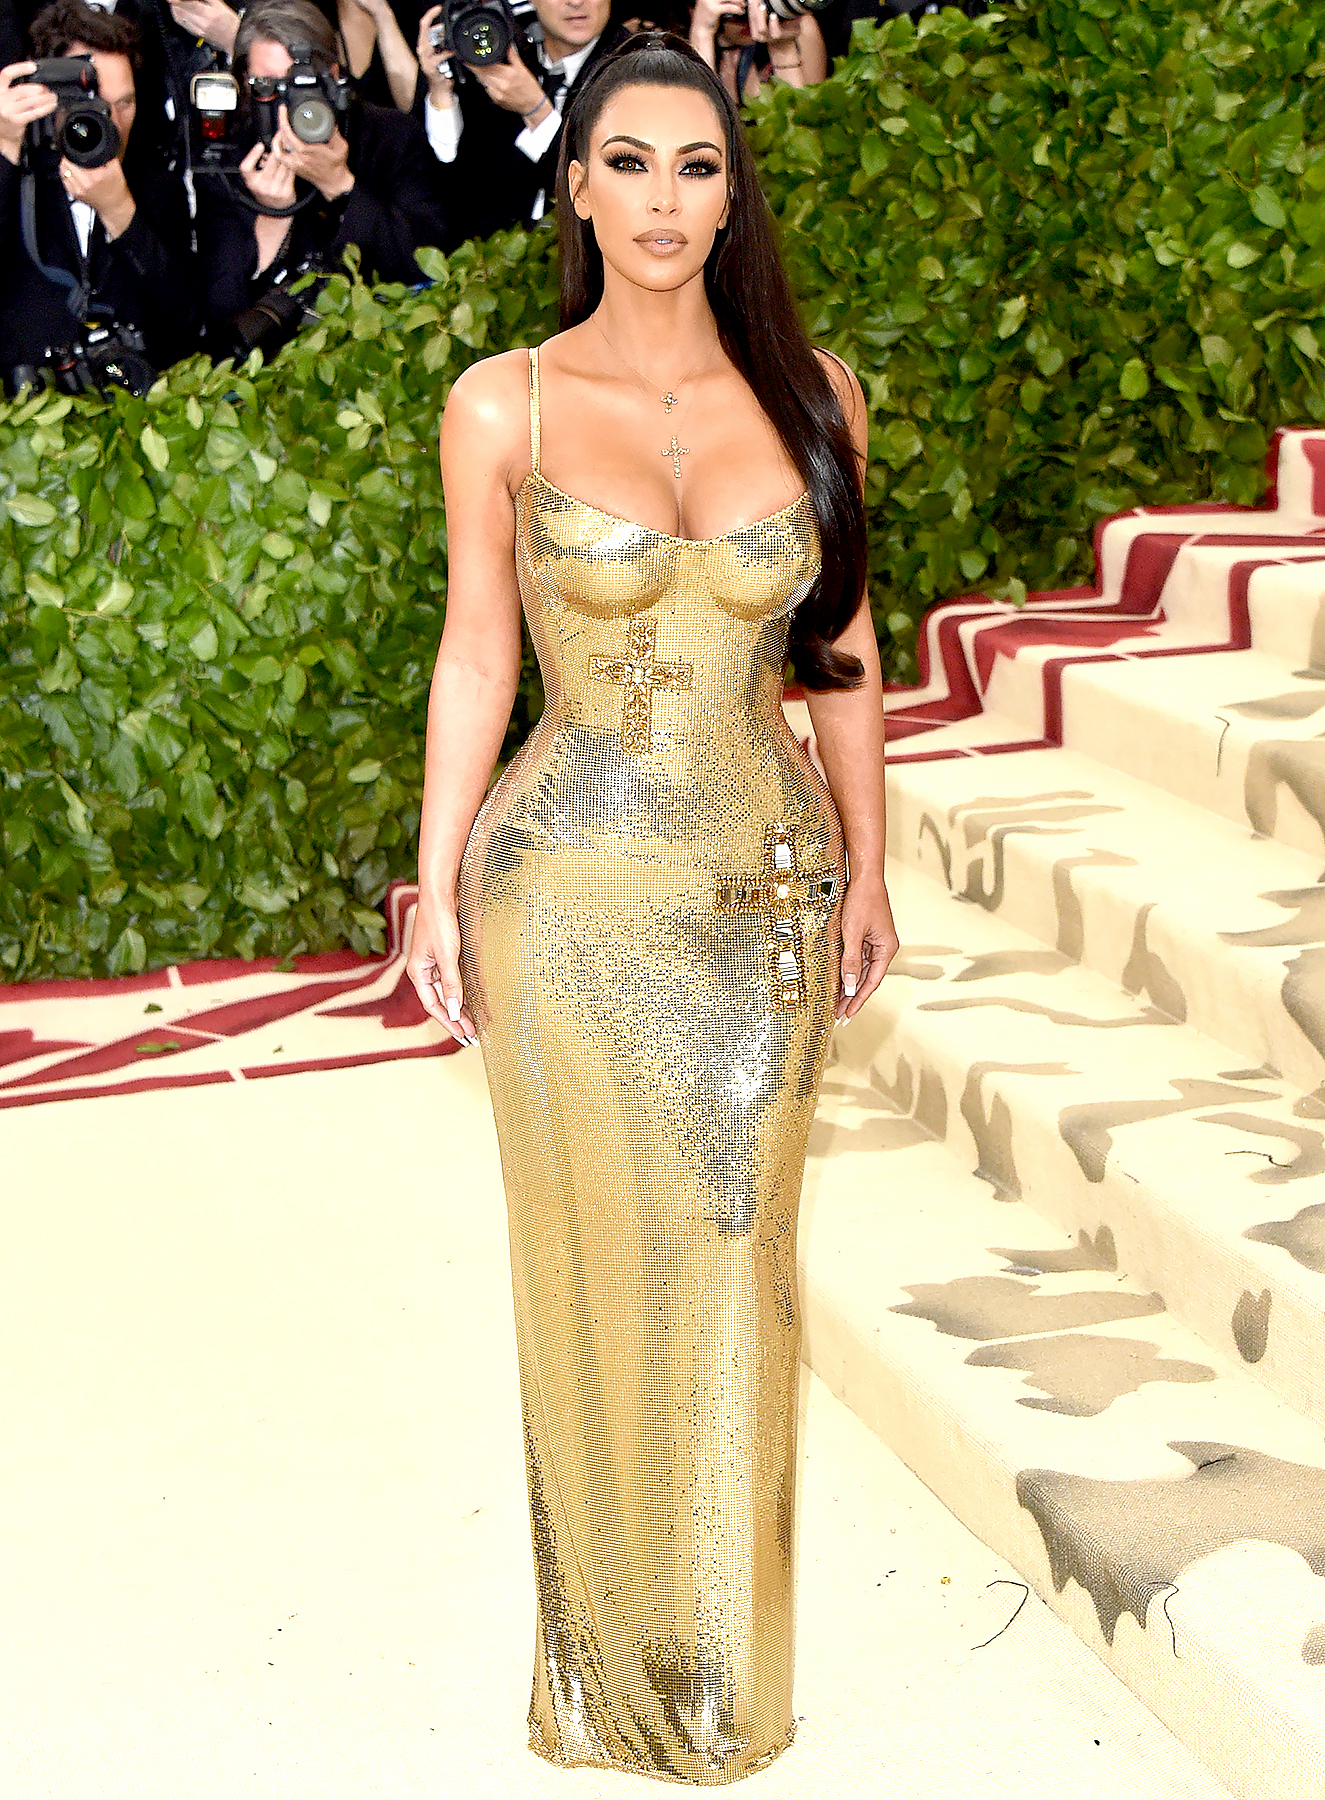 4. Kim Kardashian West